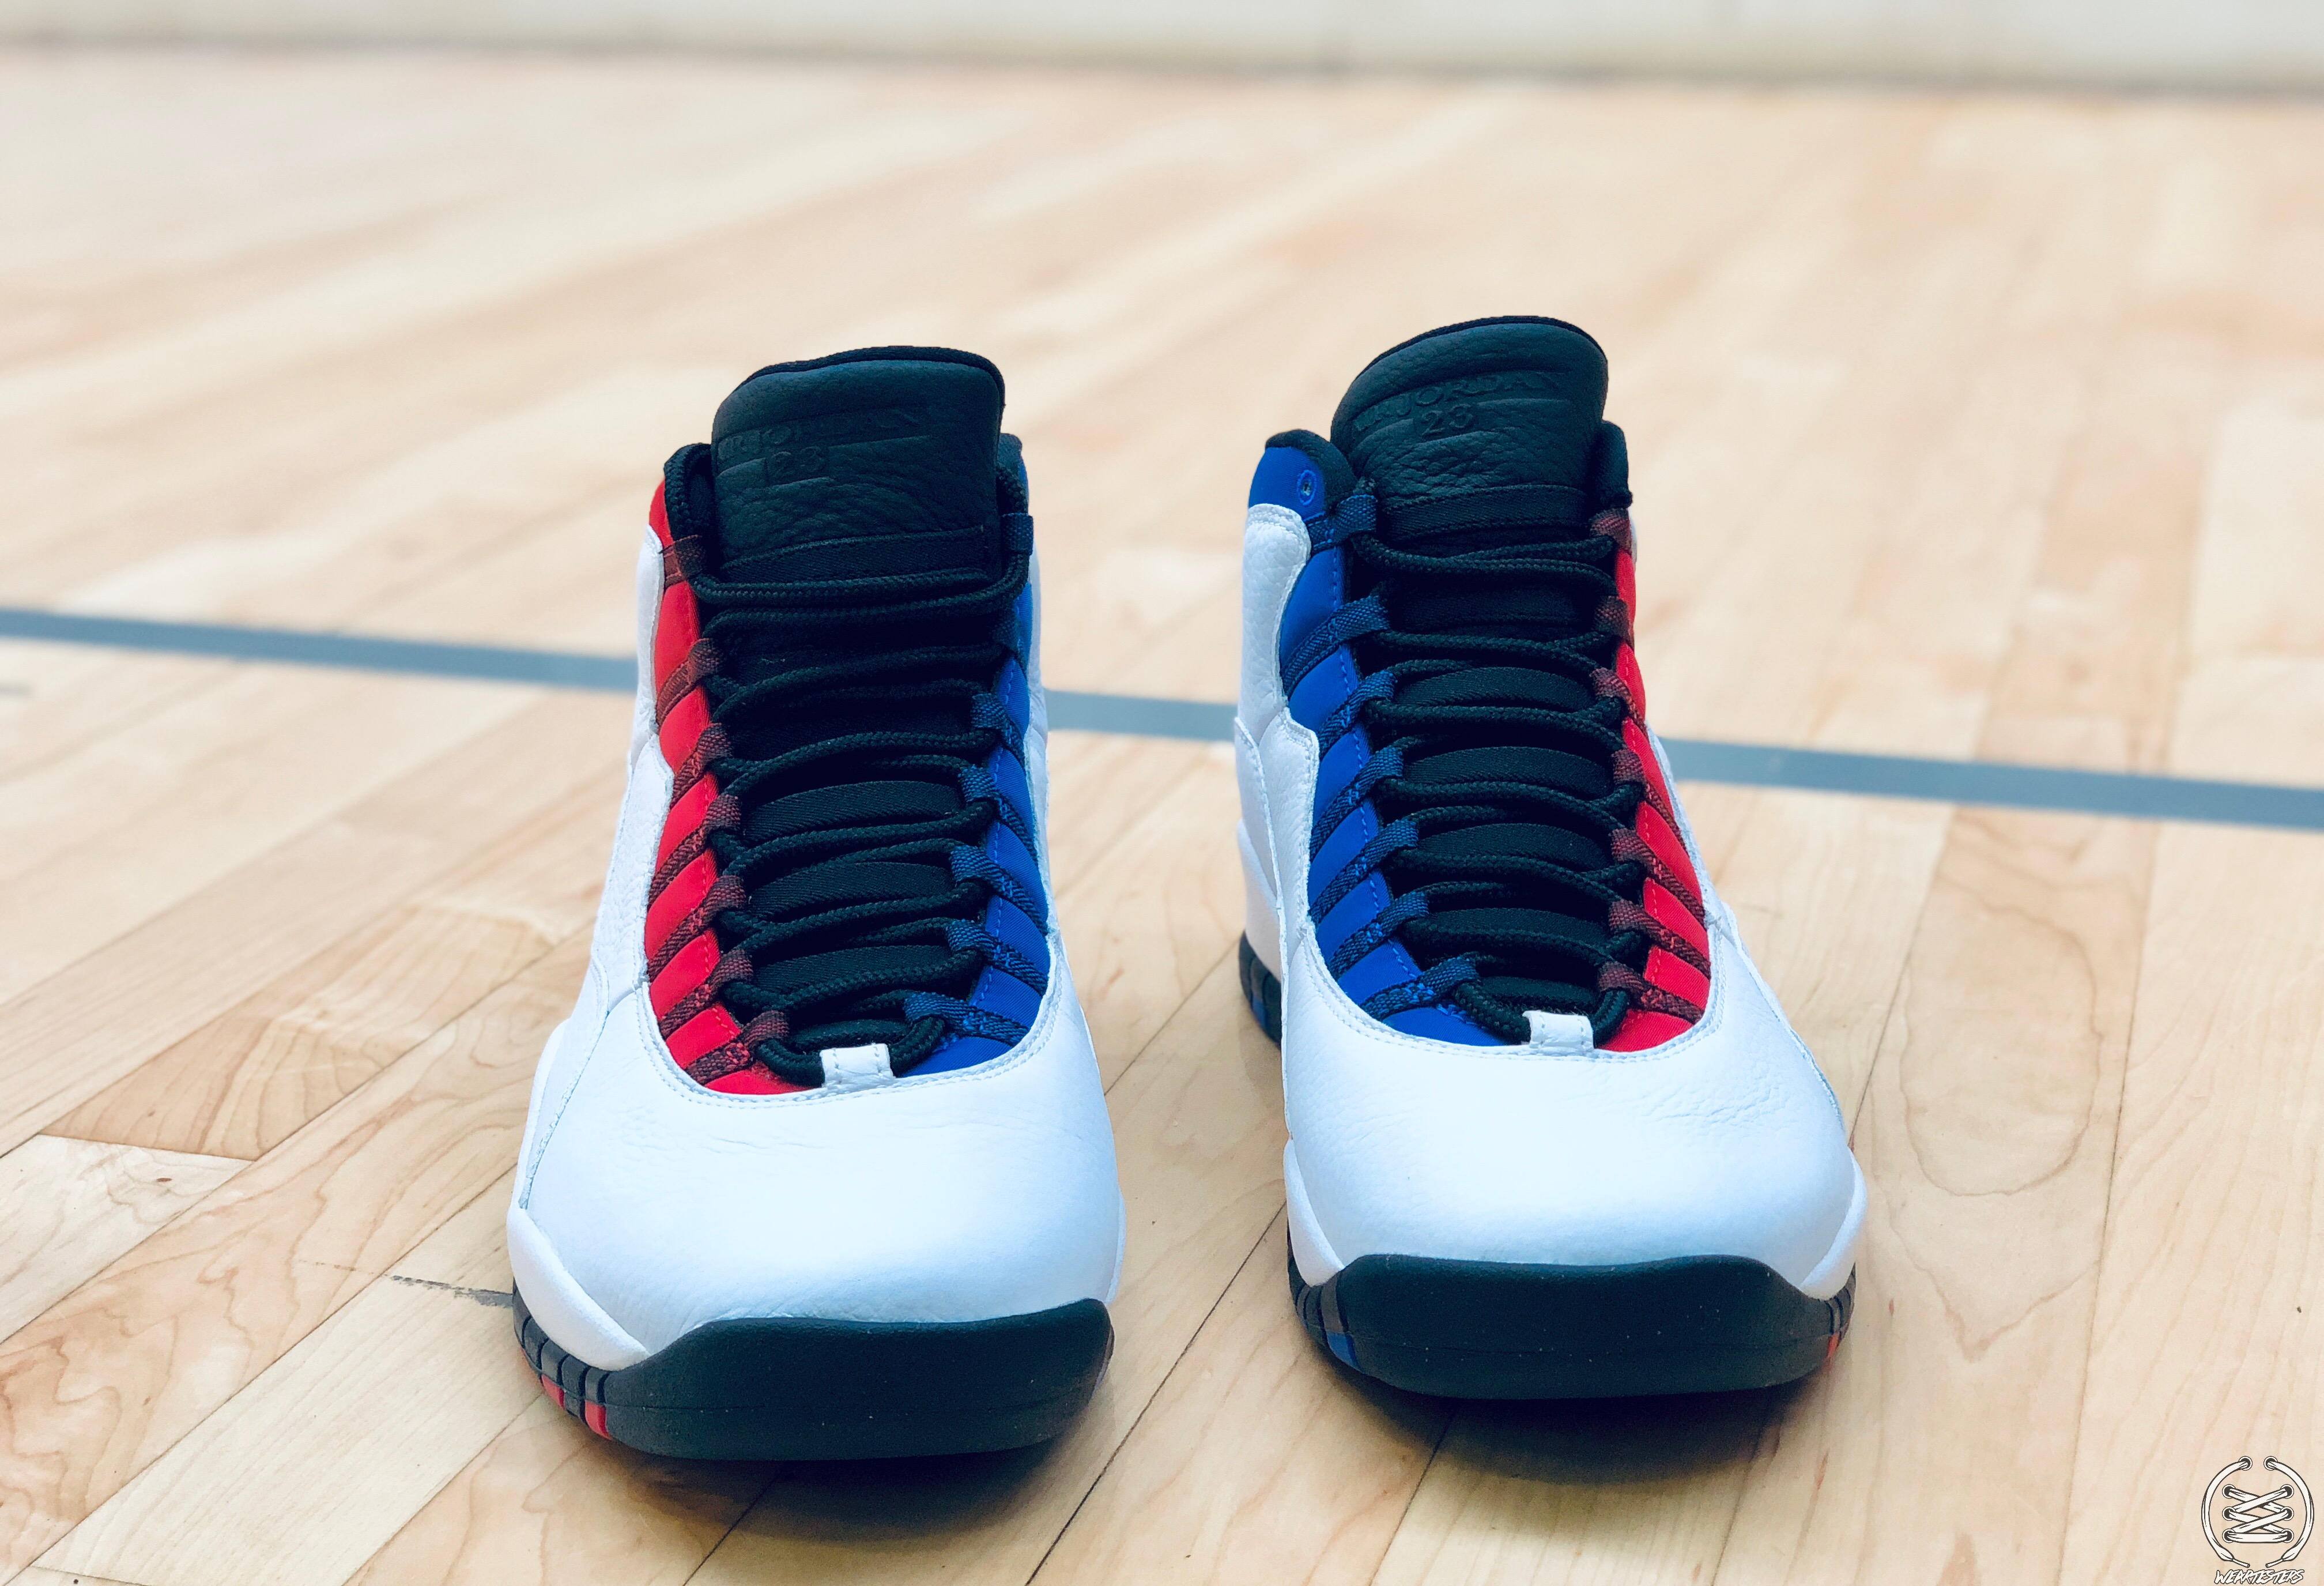 Air Jordan 10 class of 2006 3